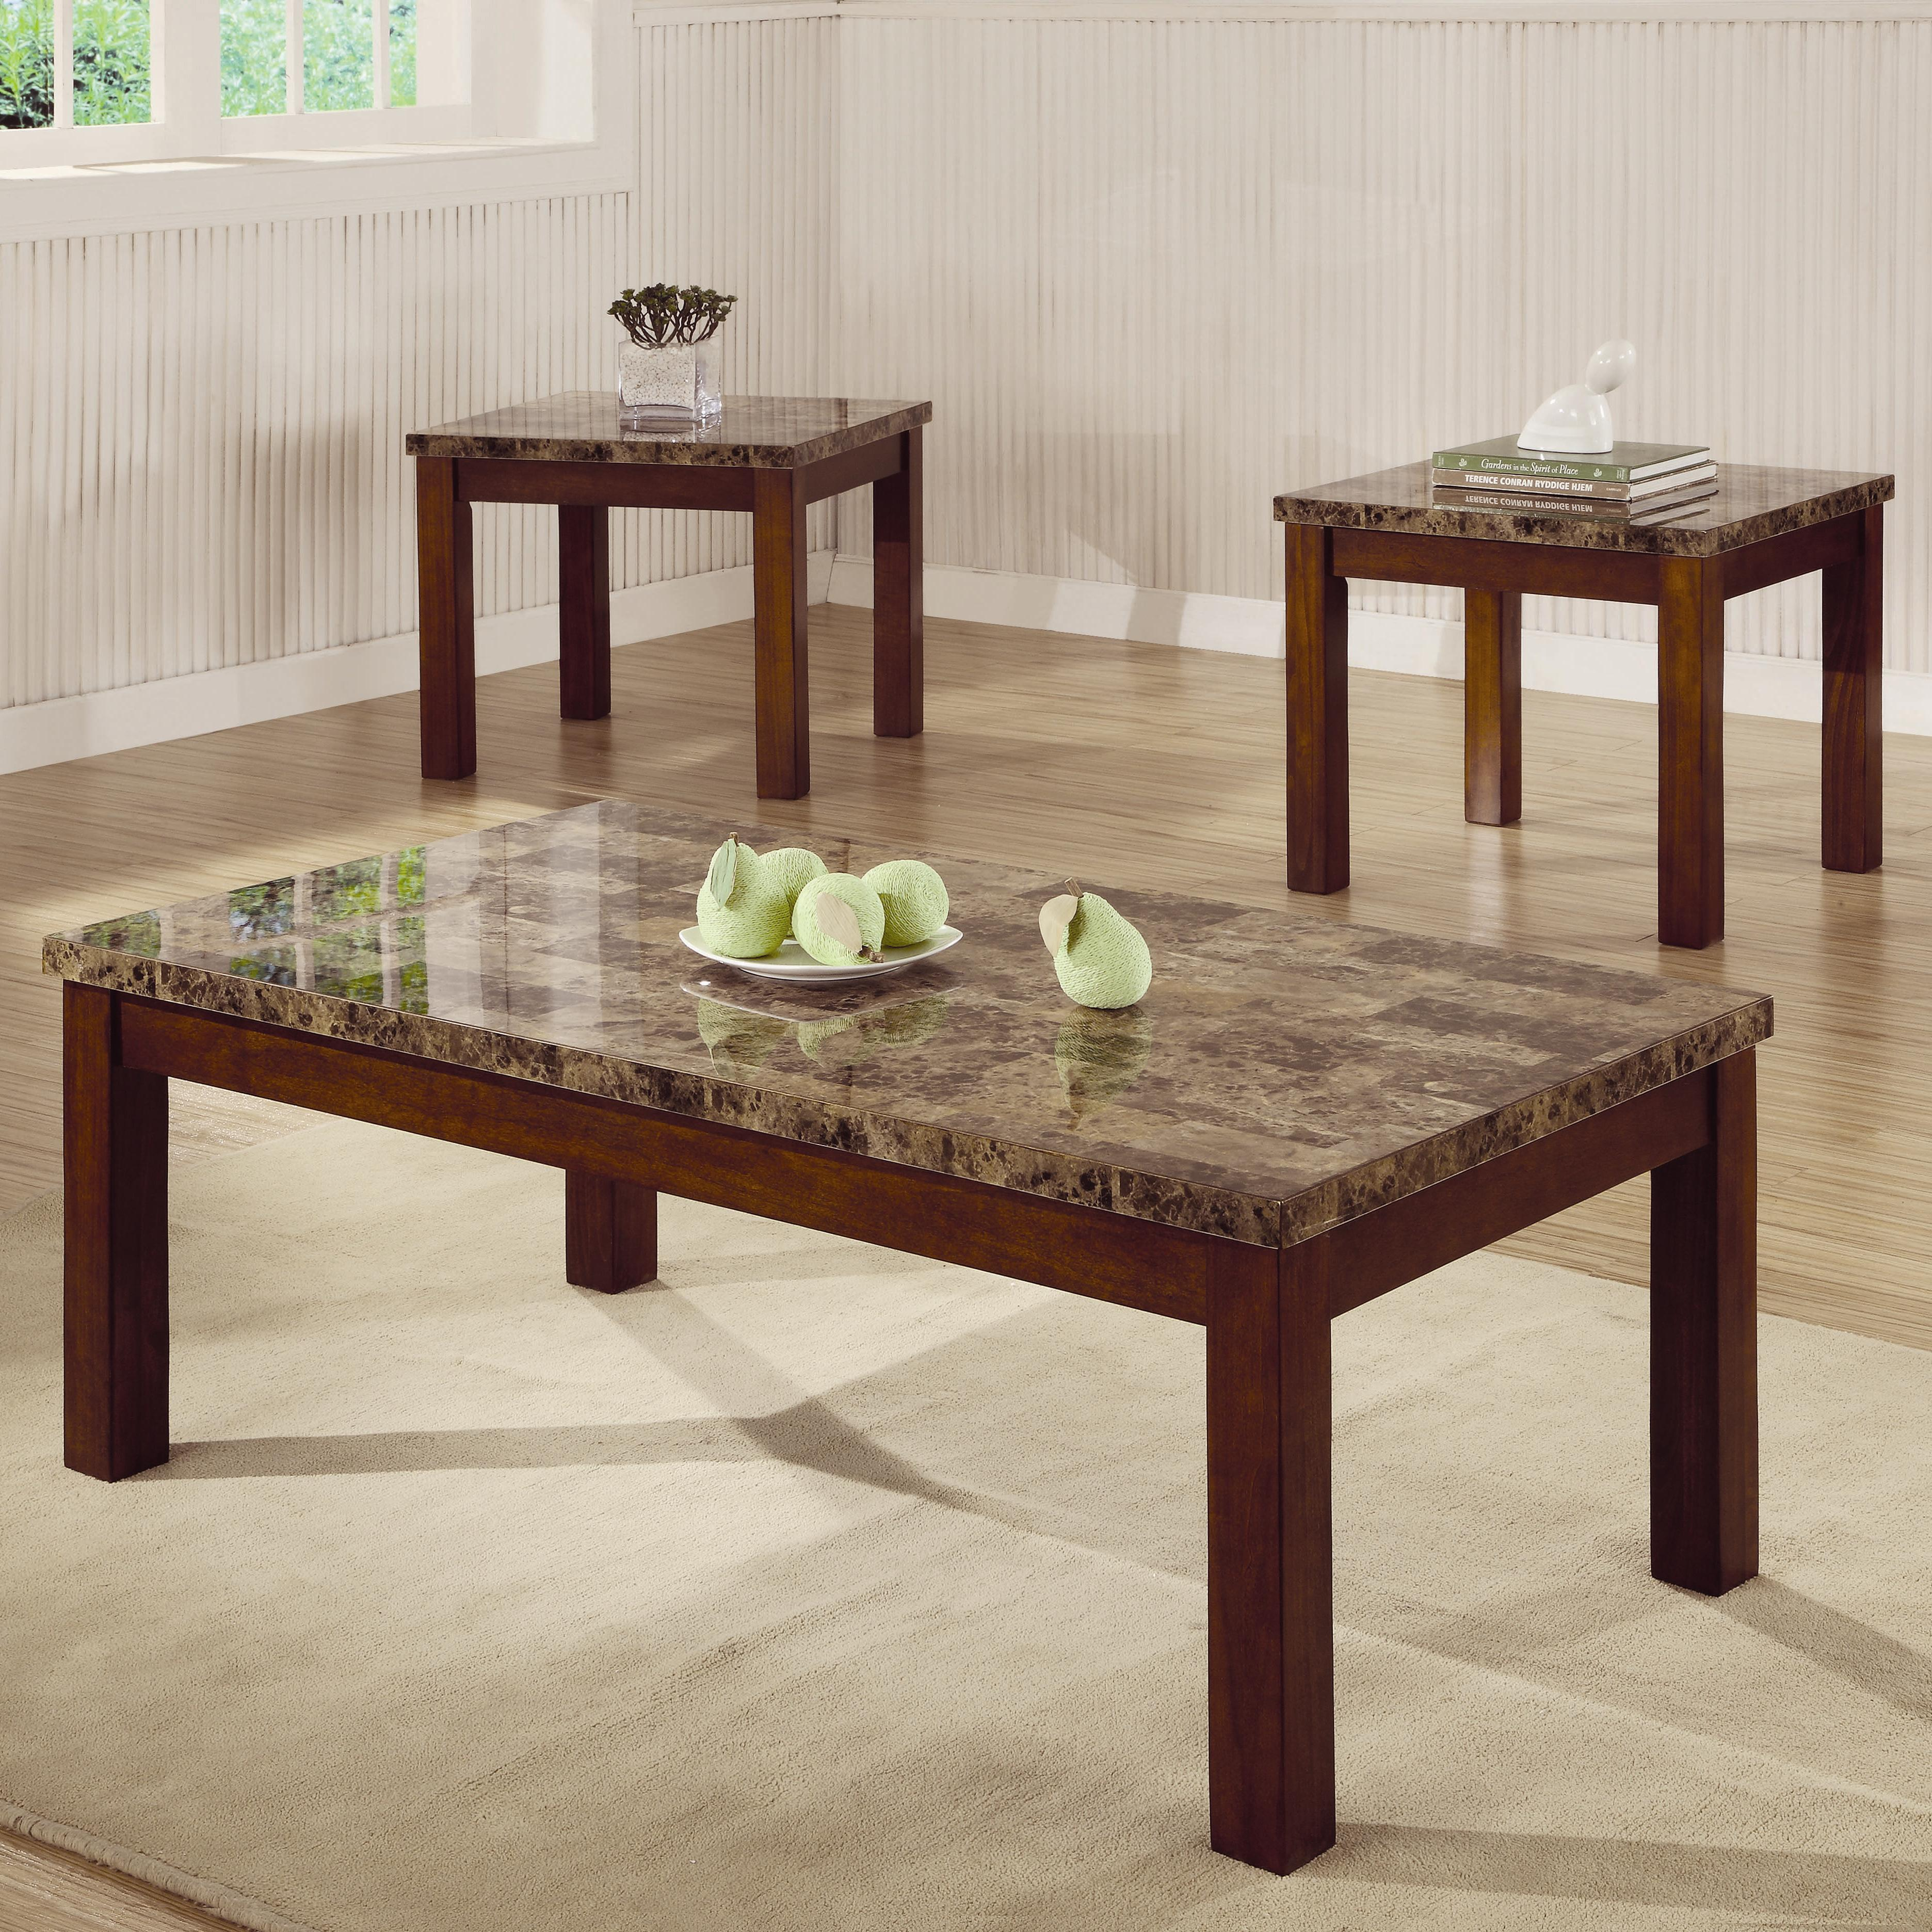 round tablecloth the perfect beautiful cherry wood end table coaster occasional sets modern coffee and set collections piece toc fine furniture tall shoe rack high chairs slabs